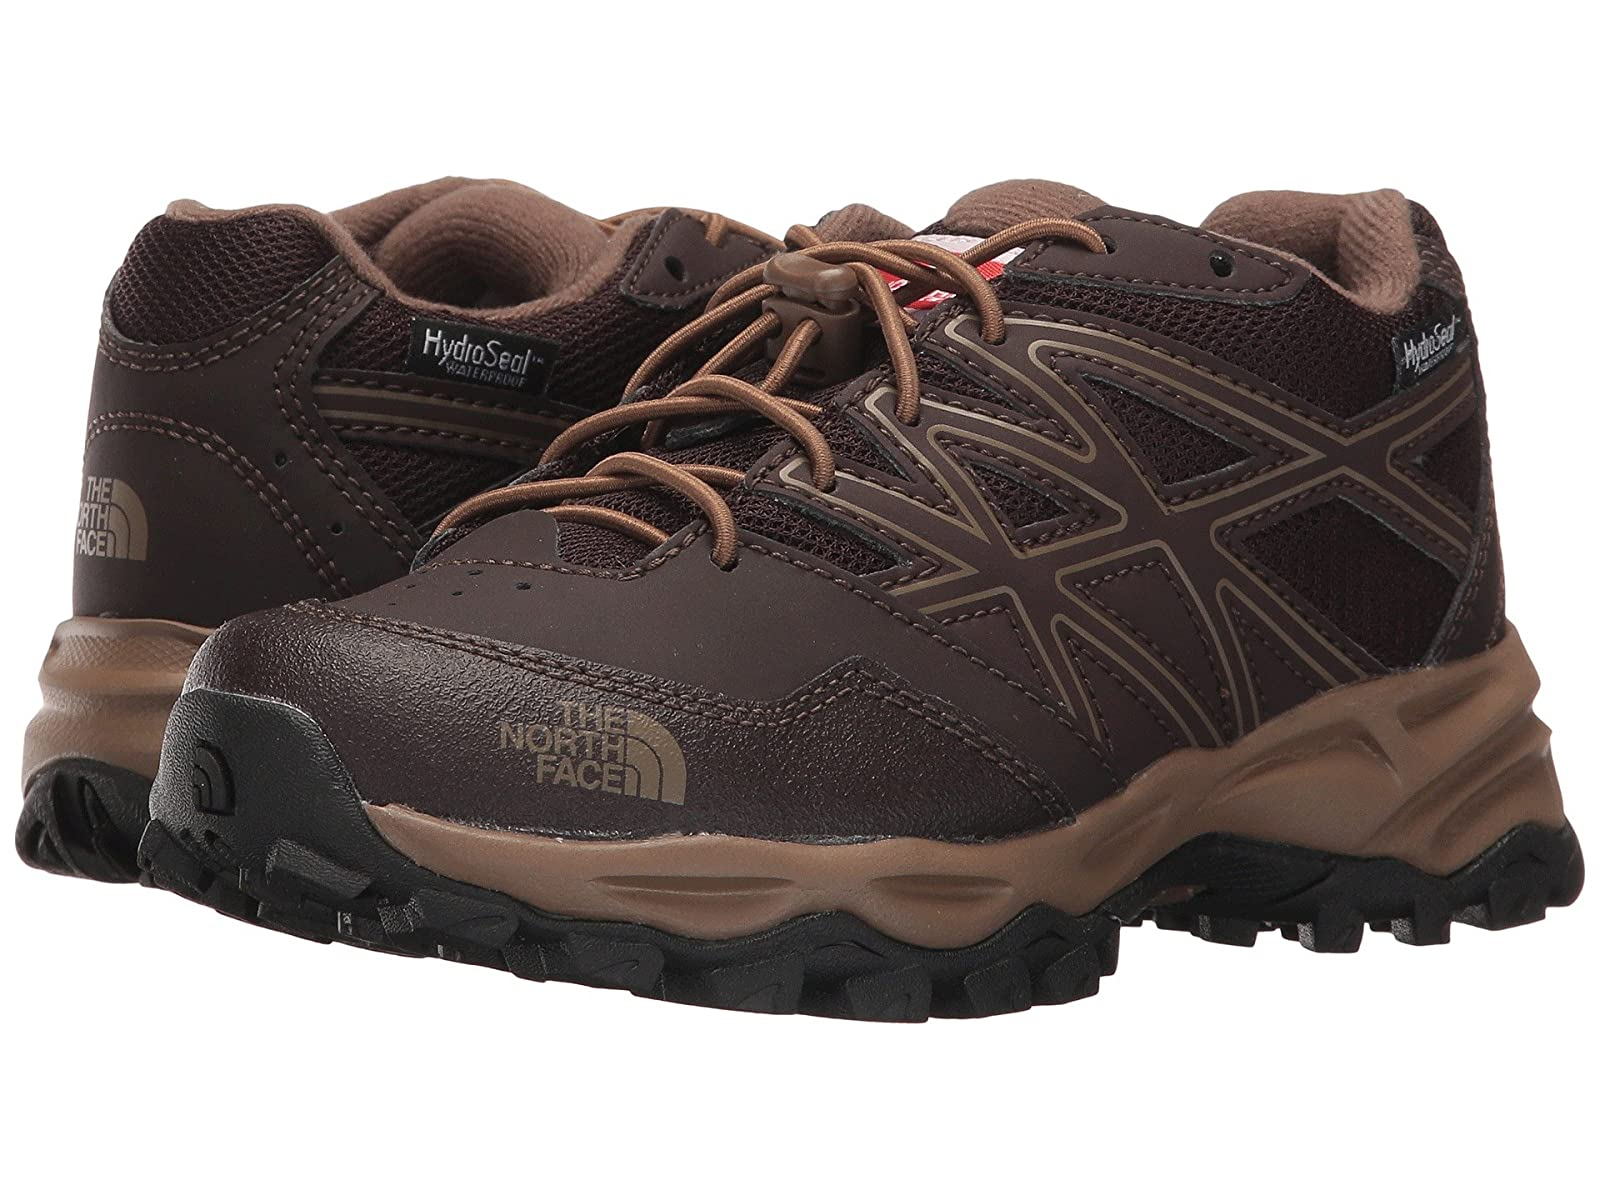 The North Face Kids Jr Hedgehog Hiker WP (Little Kid/Big Kid)Atmospheric grades have affordable shoes